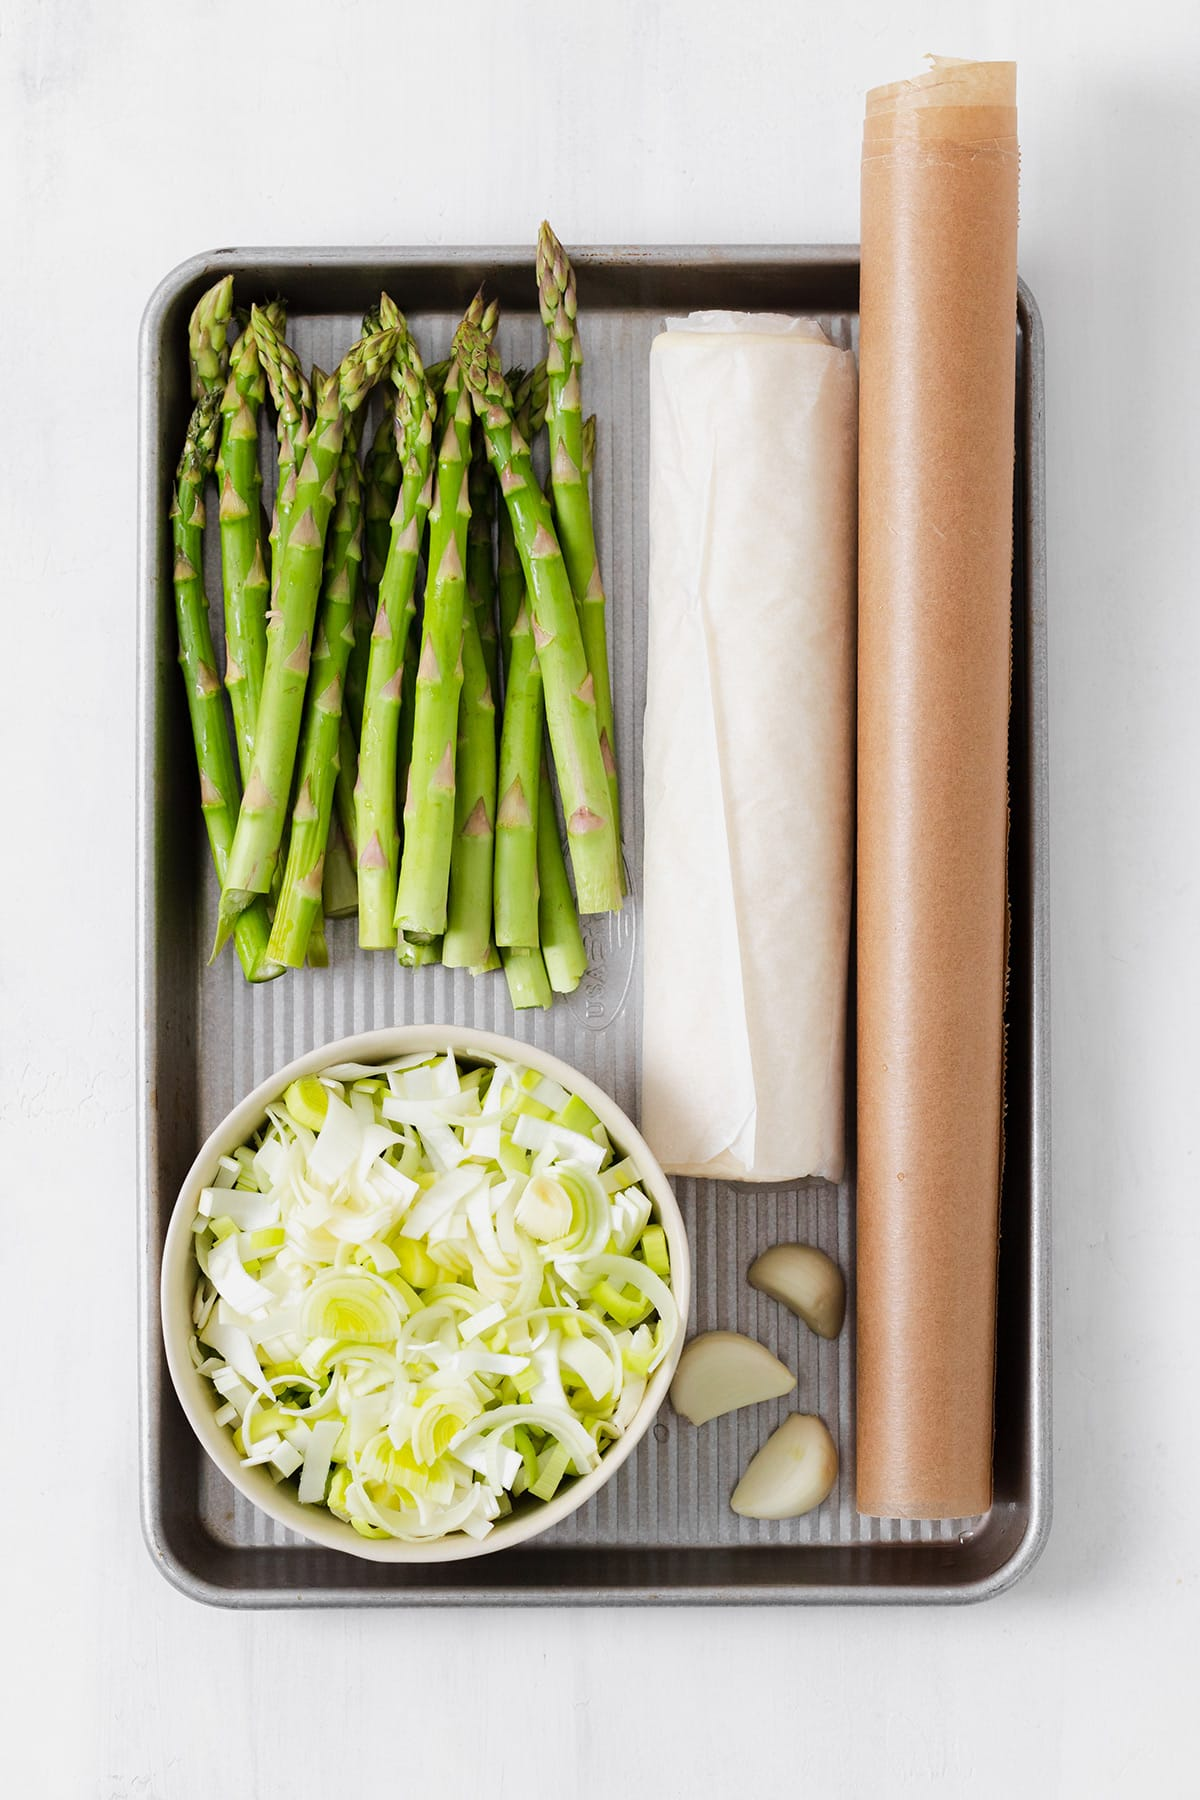 Ingredients for asparagus tart laid out on a baking sheet - asparagus, chopped leek, garlic cloves, puff pastry, and parchment paper